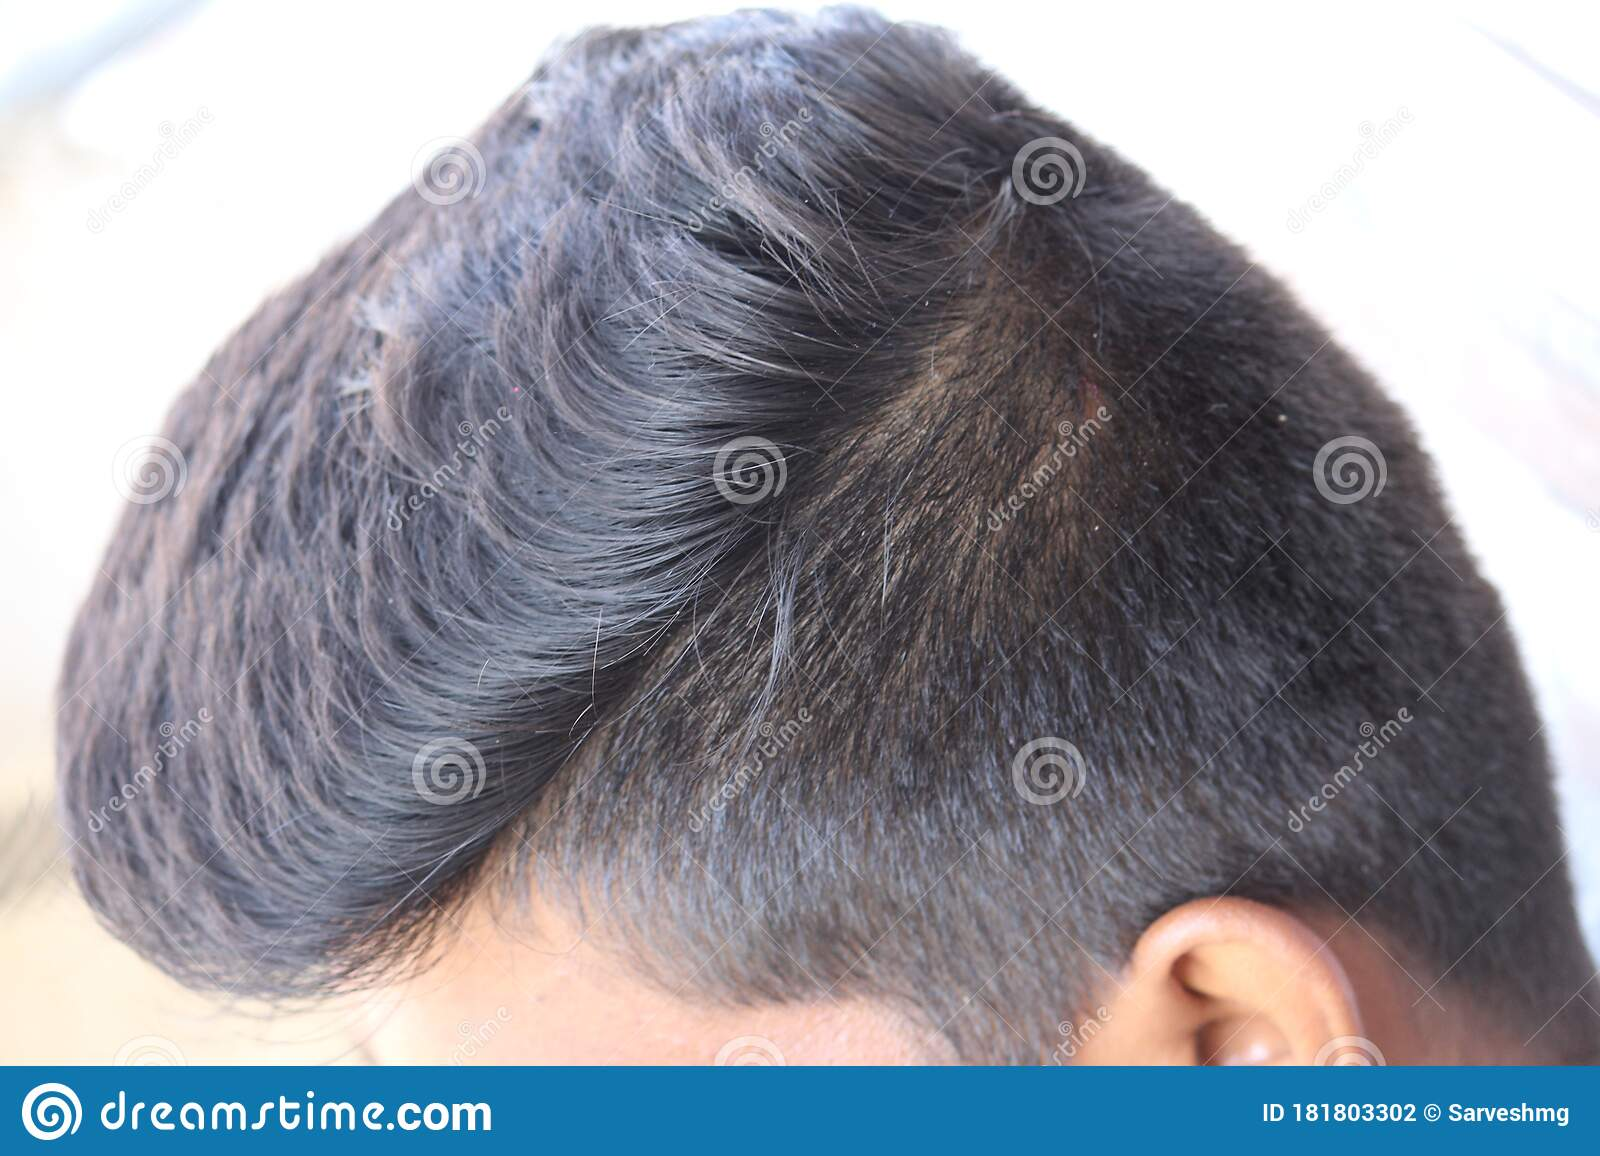 an indian man hair style in close up. beautiful silky shine